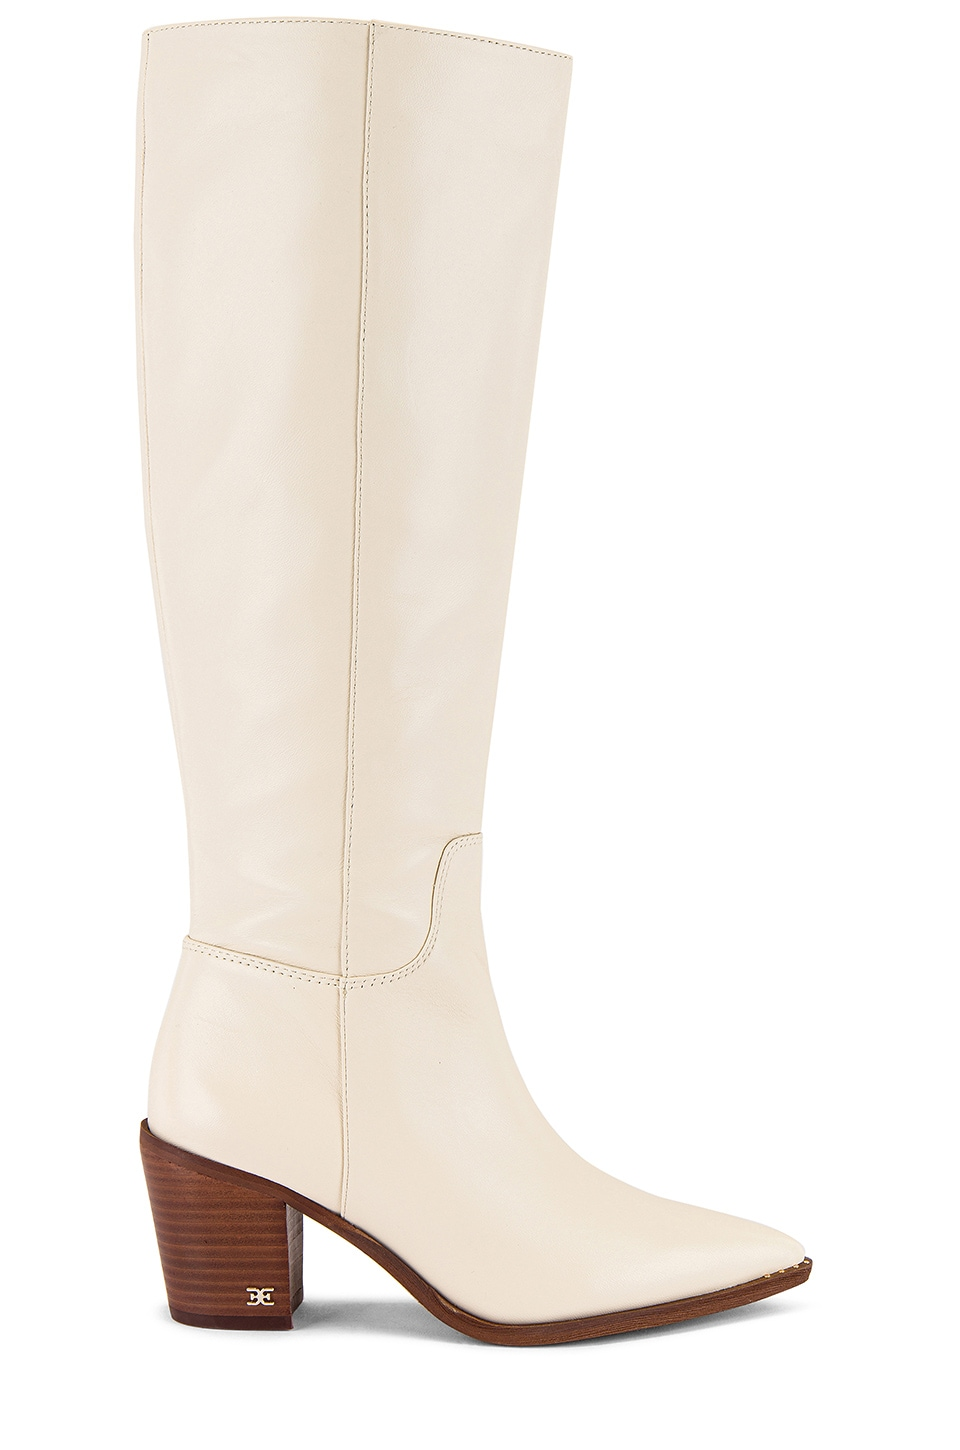 Sam Edelman Lindsey Boot in Modern Ivory Leather